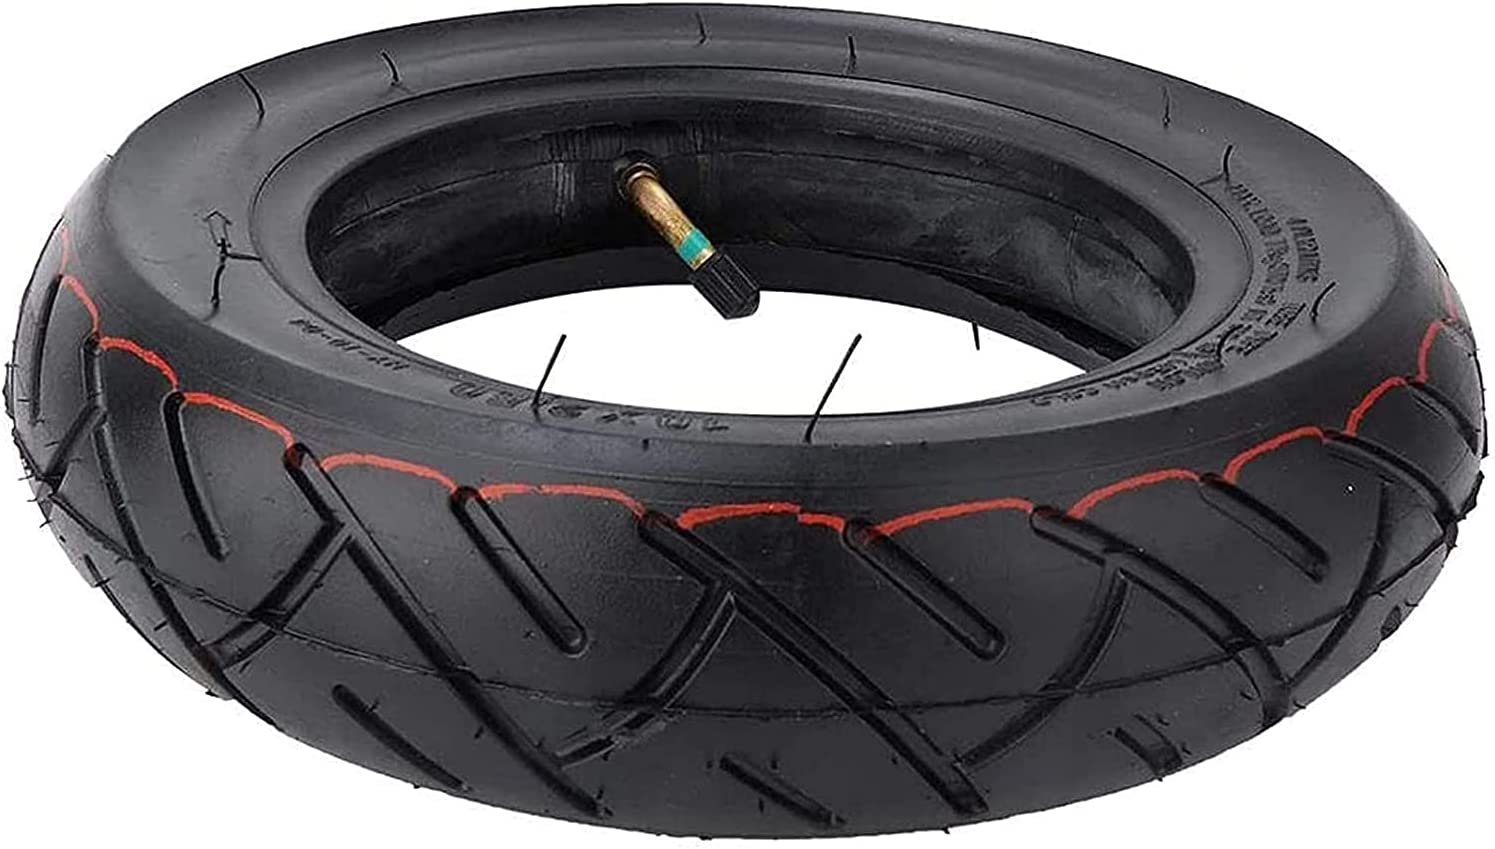 Scooter Inflatable Memphis Mall Tyre 10 Inch Tire Outer Inner Rubber Solid Popular popular